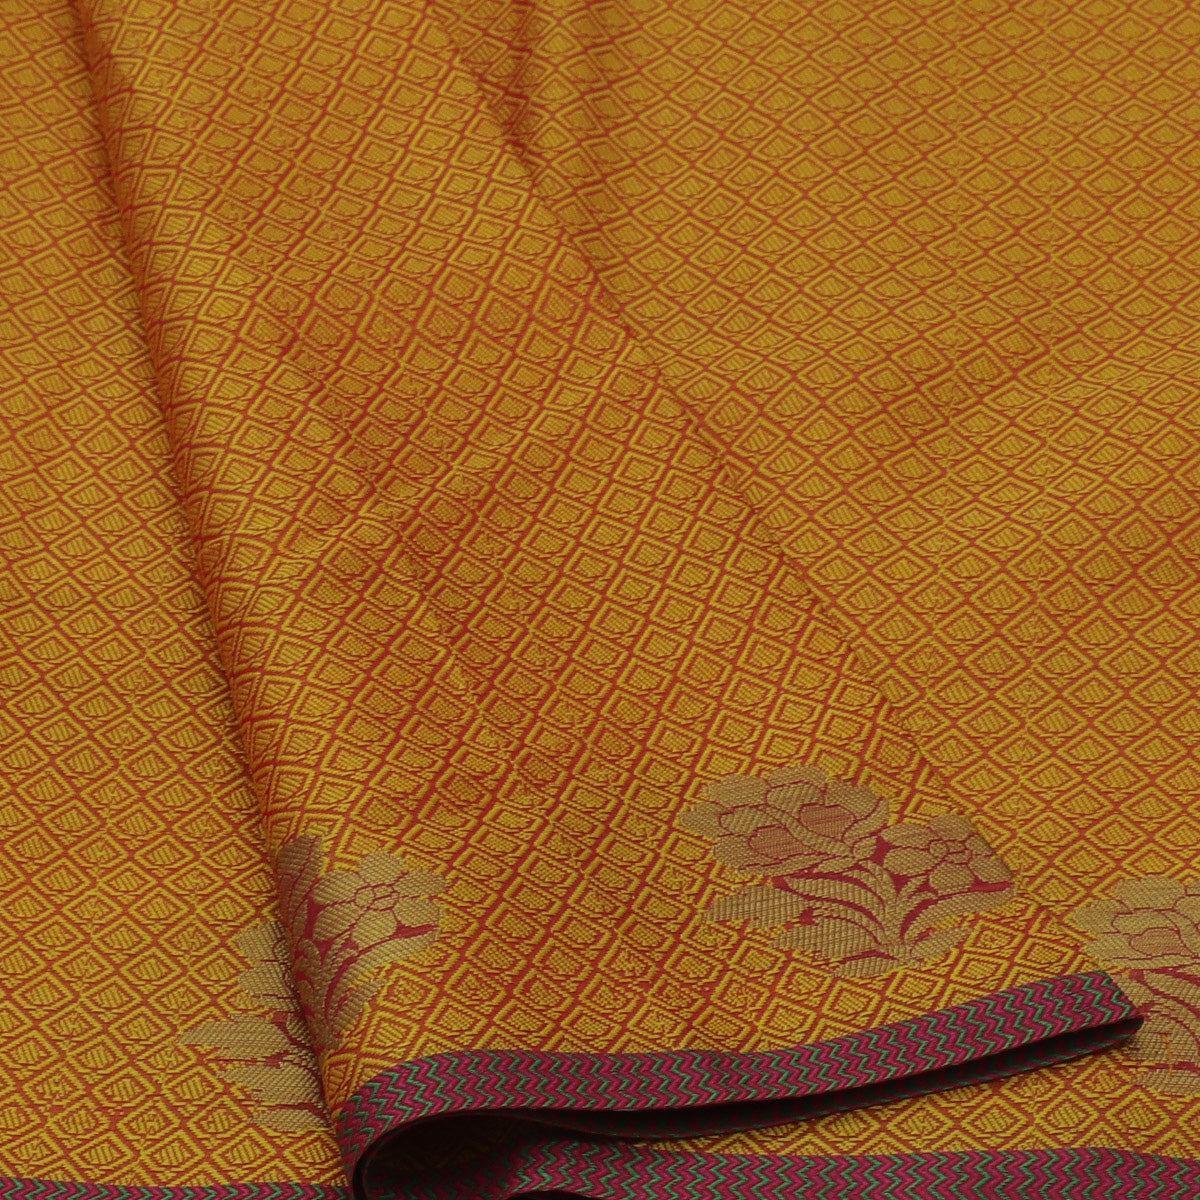 Banarasi Kora Muslin Saree Yellow with Flower Zari Border for Rs.Rs. 1250.00 | Banarasi Sarees by Prashanti Sarees